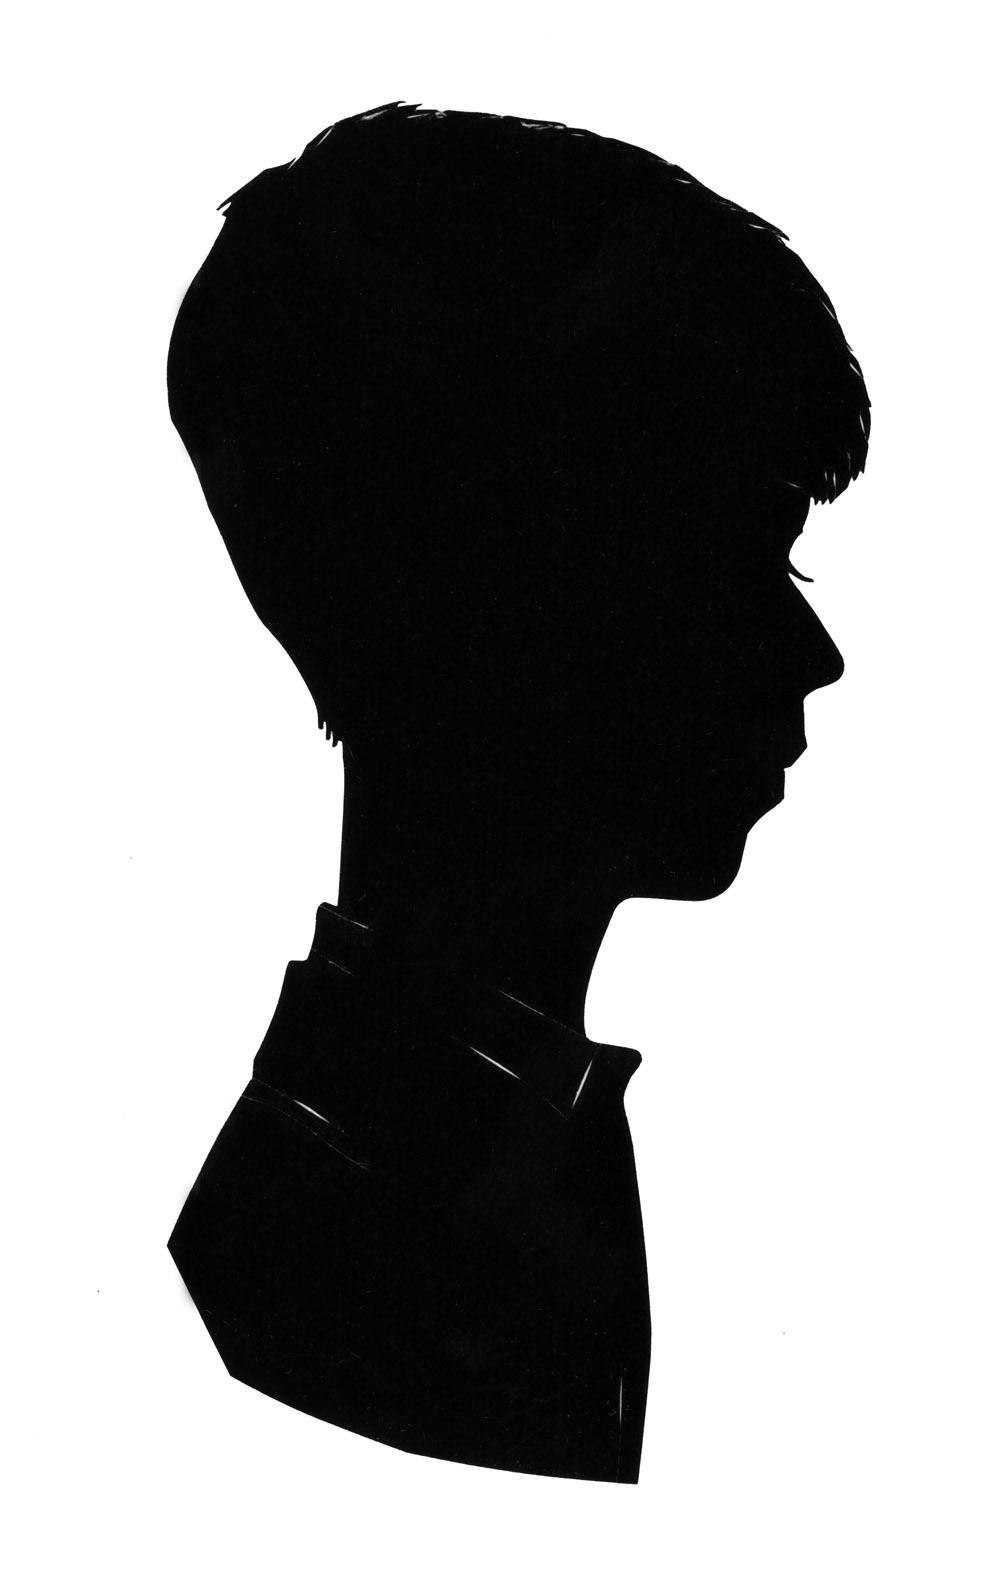 Silhouette Boy Head - Cliparts.co - 91.2KB